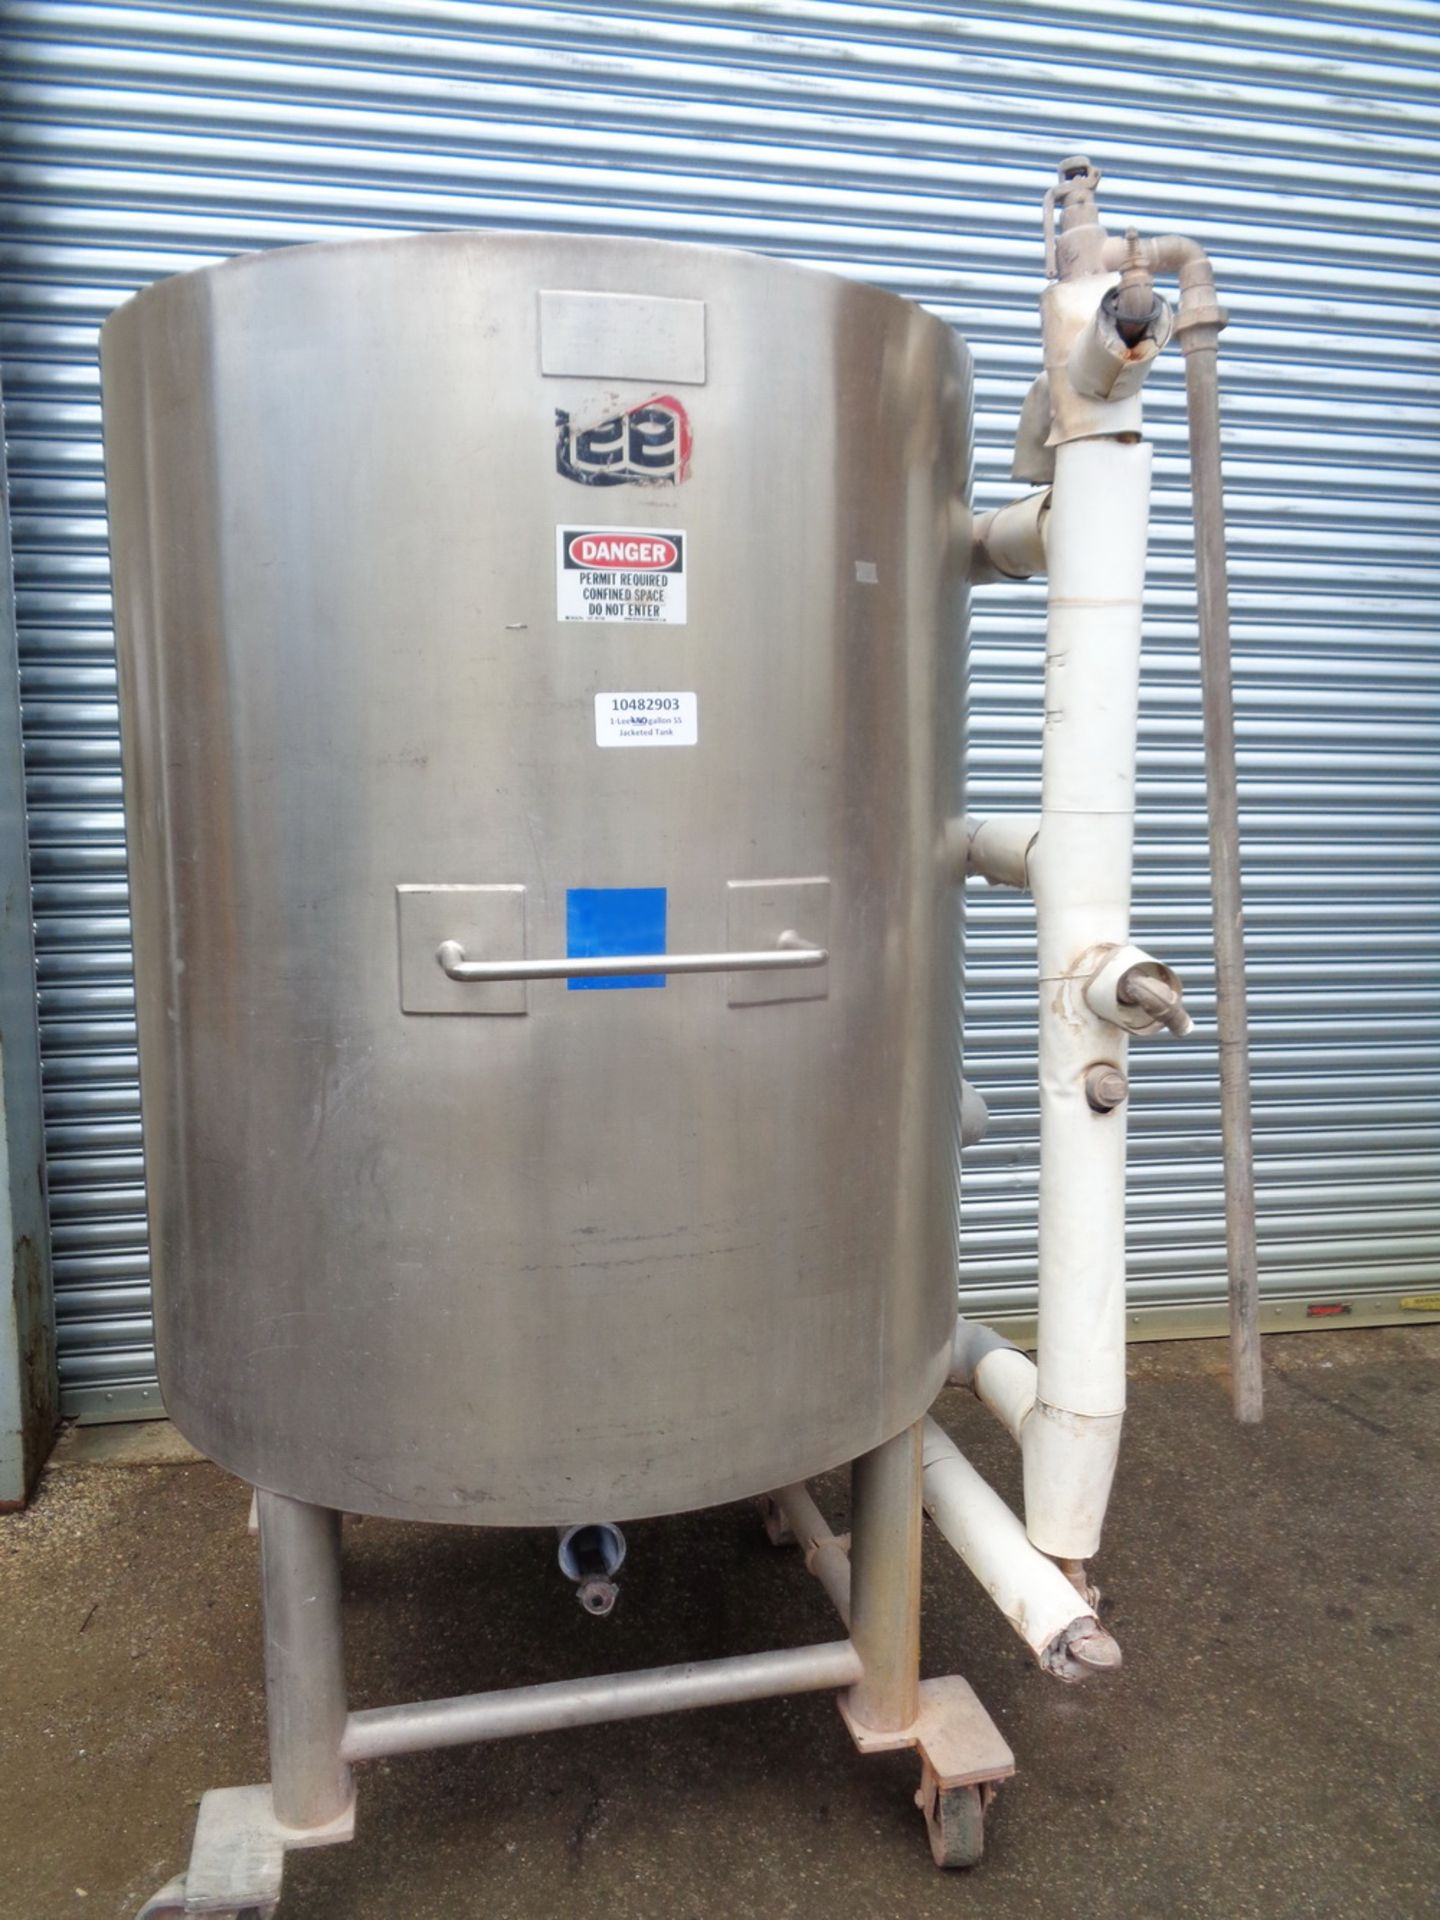 Lee 250 gallon Stainless Steel Jacketed Tank/Kettle, Model 250U - Image 2 of 9